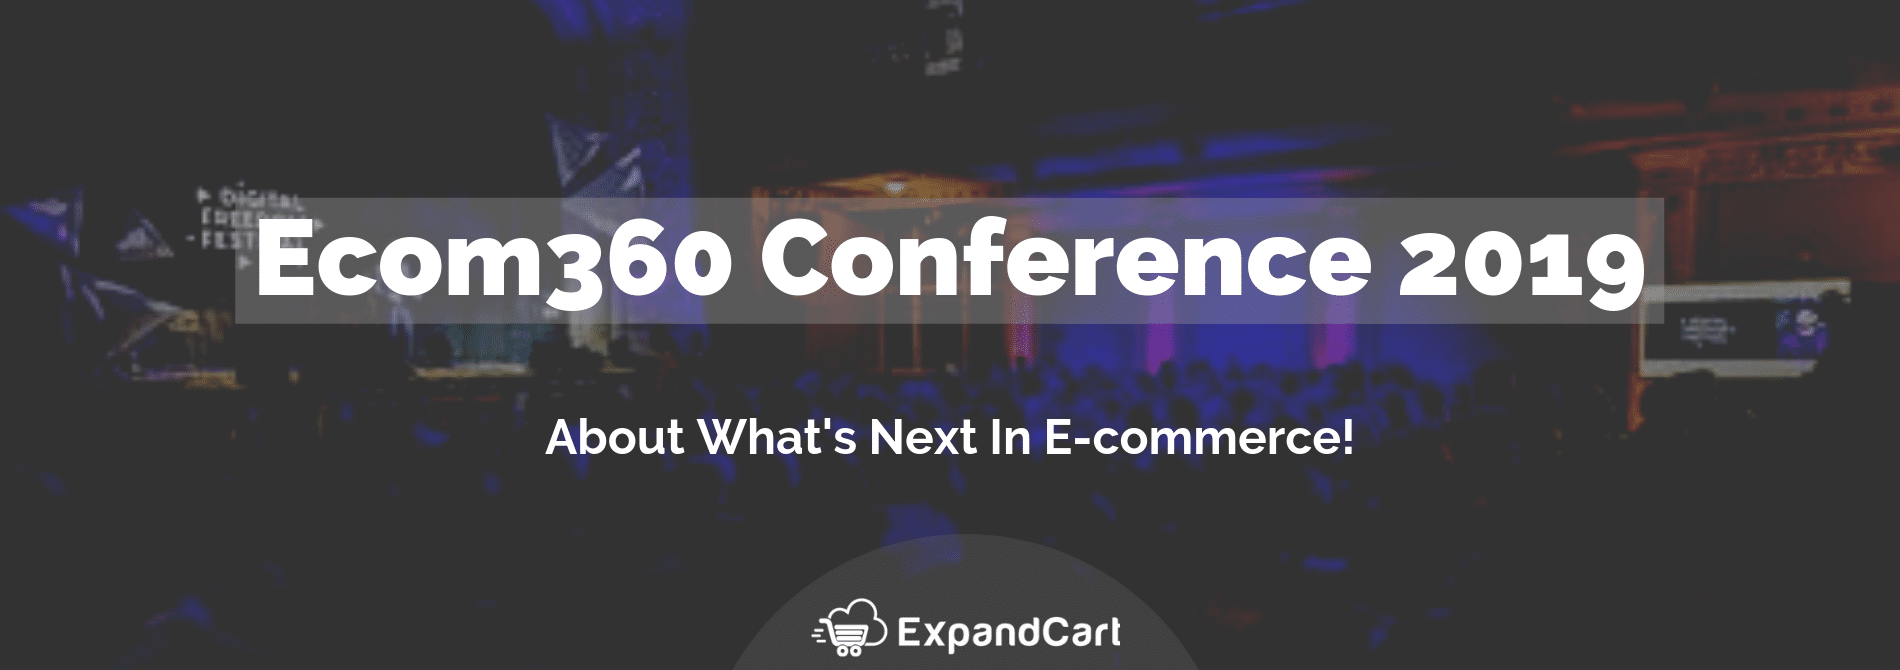 Ecom360 Conference 2019: About What's Next In E-commerce!